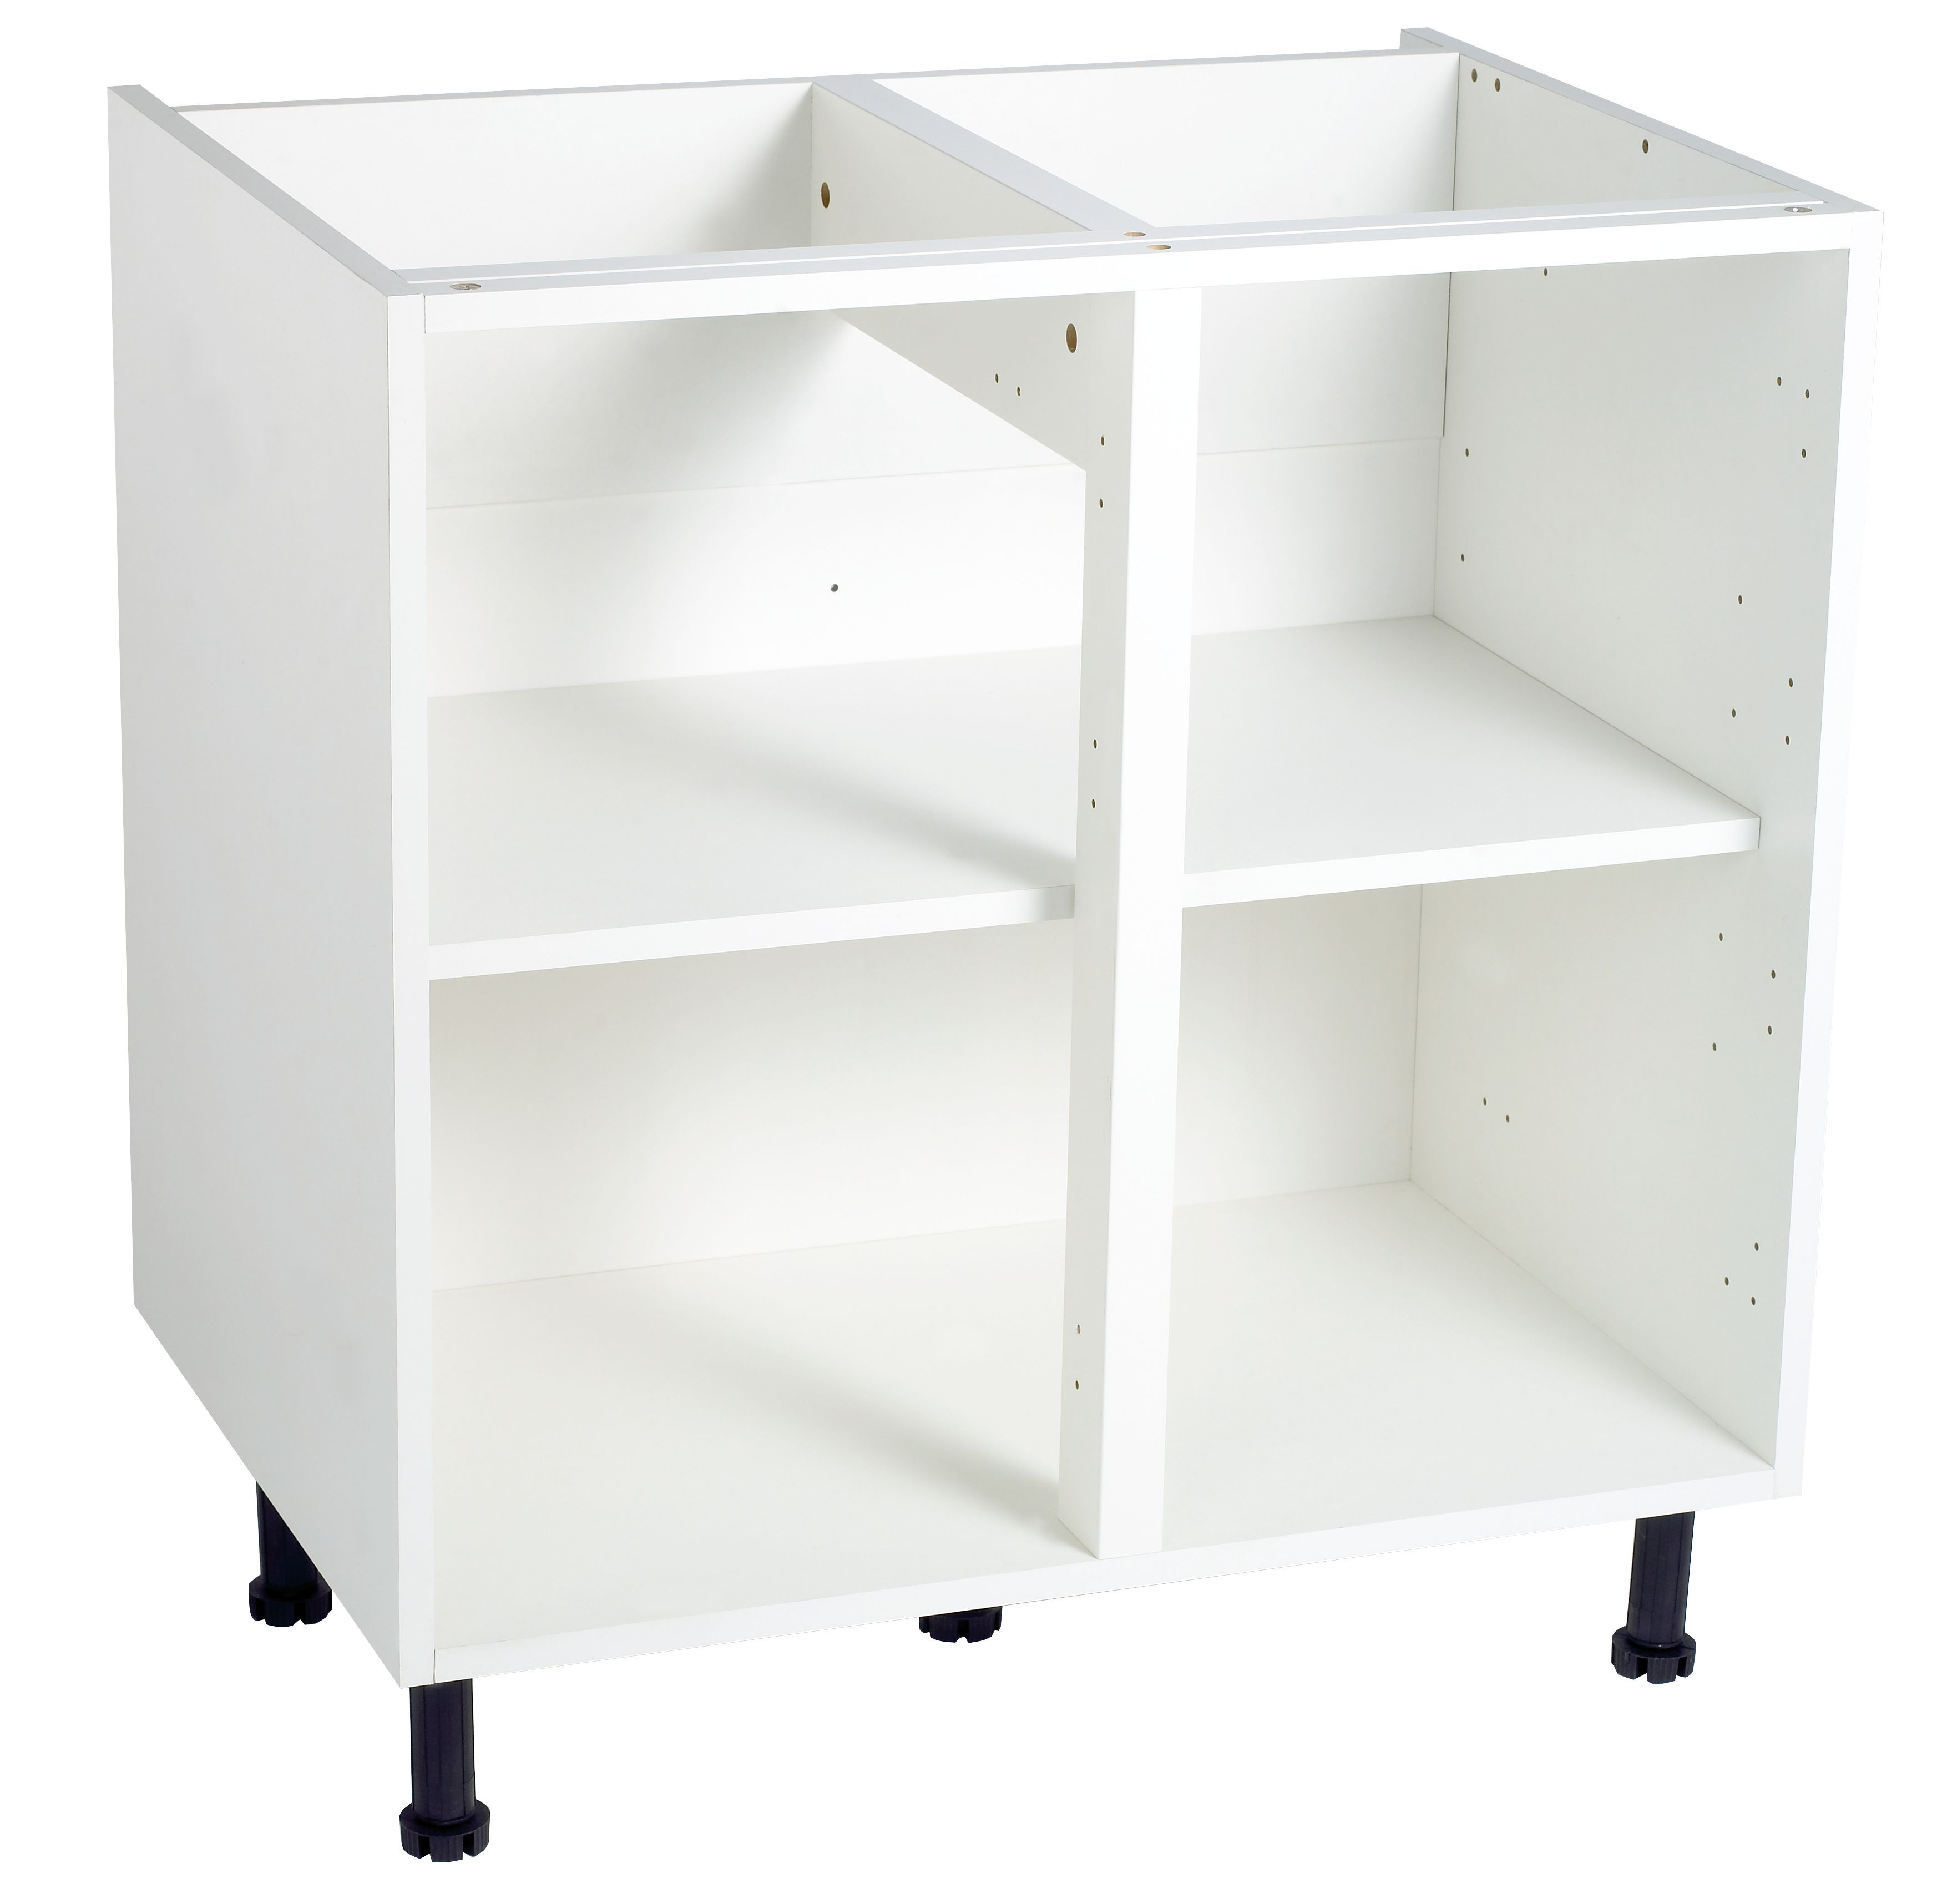 Cooke lewis white standard base cabinet unit carcass w for Kitchen cabinets 800mm